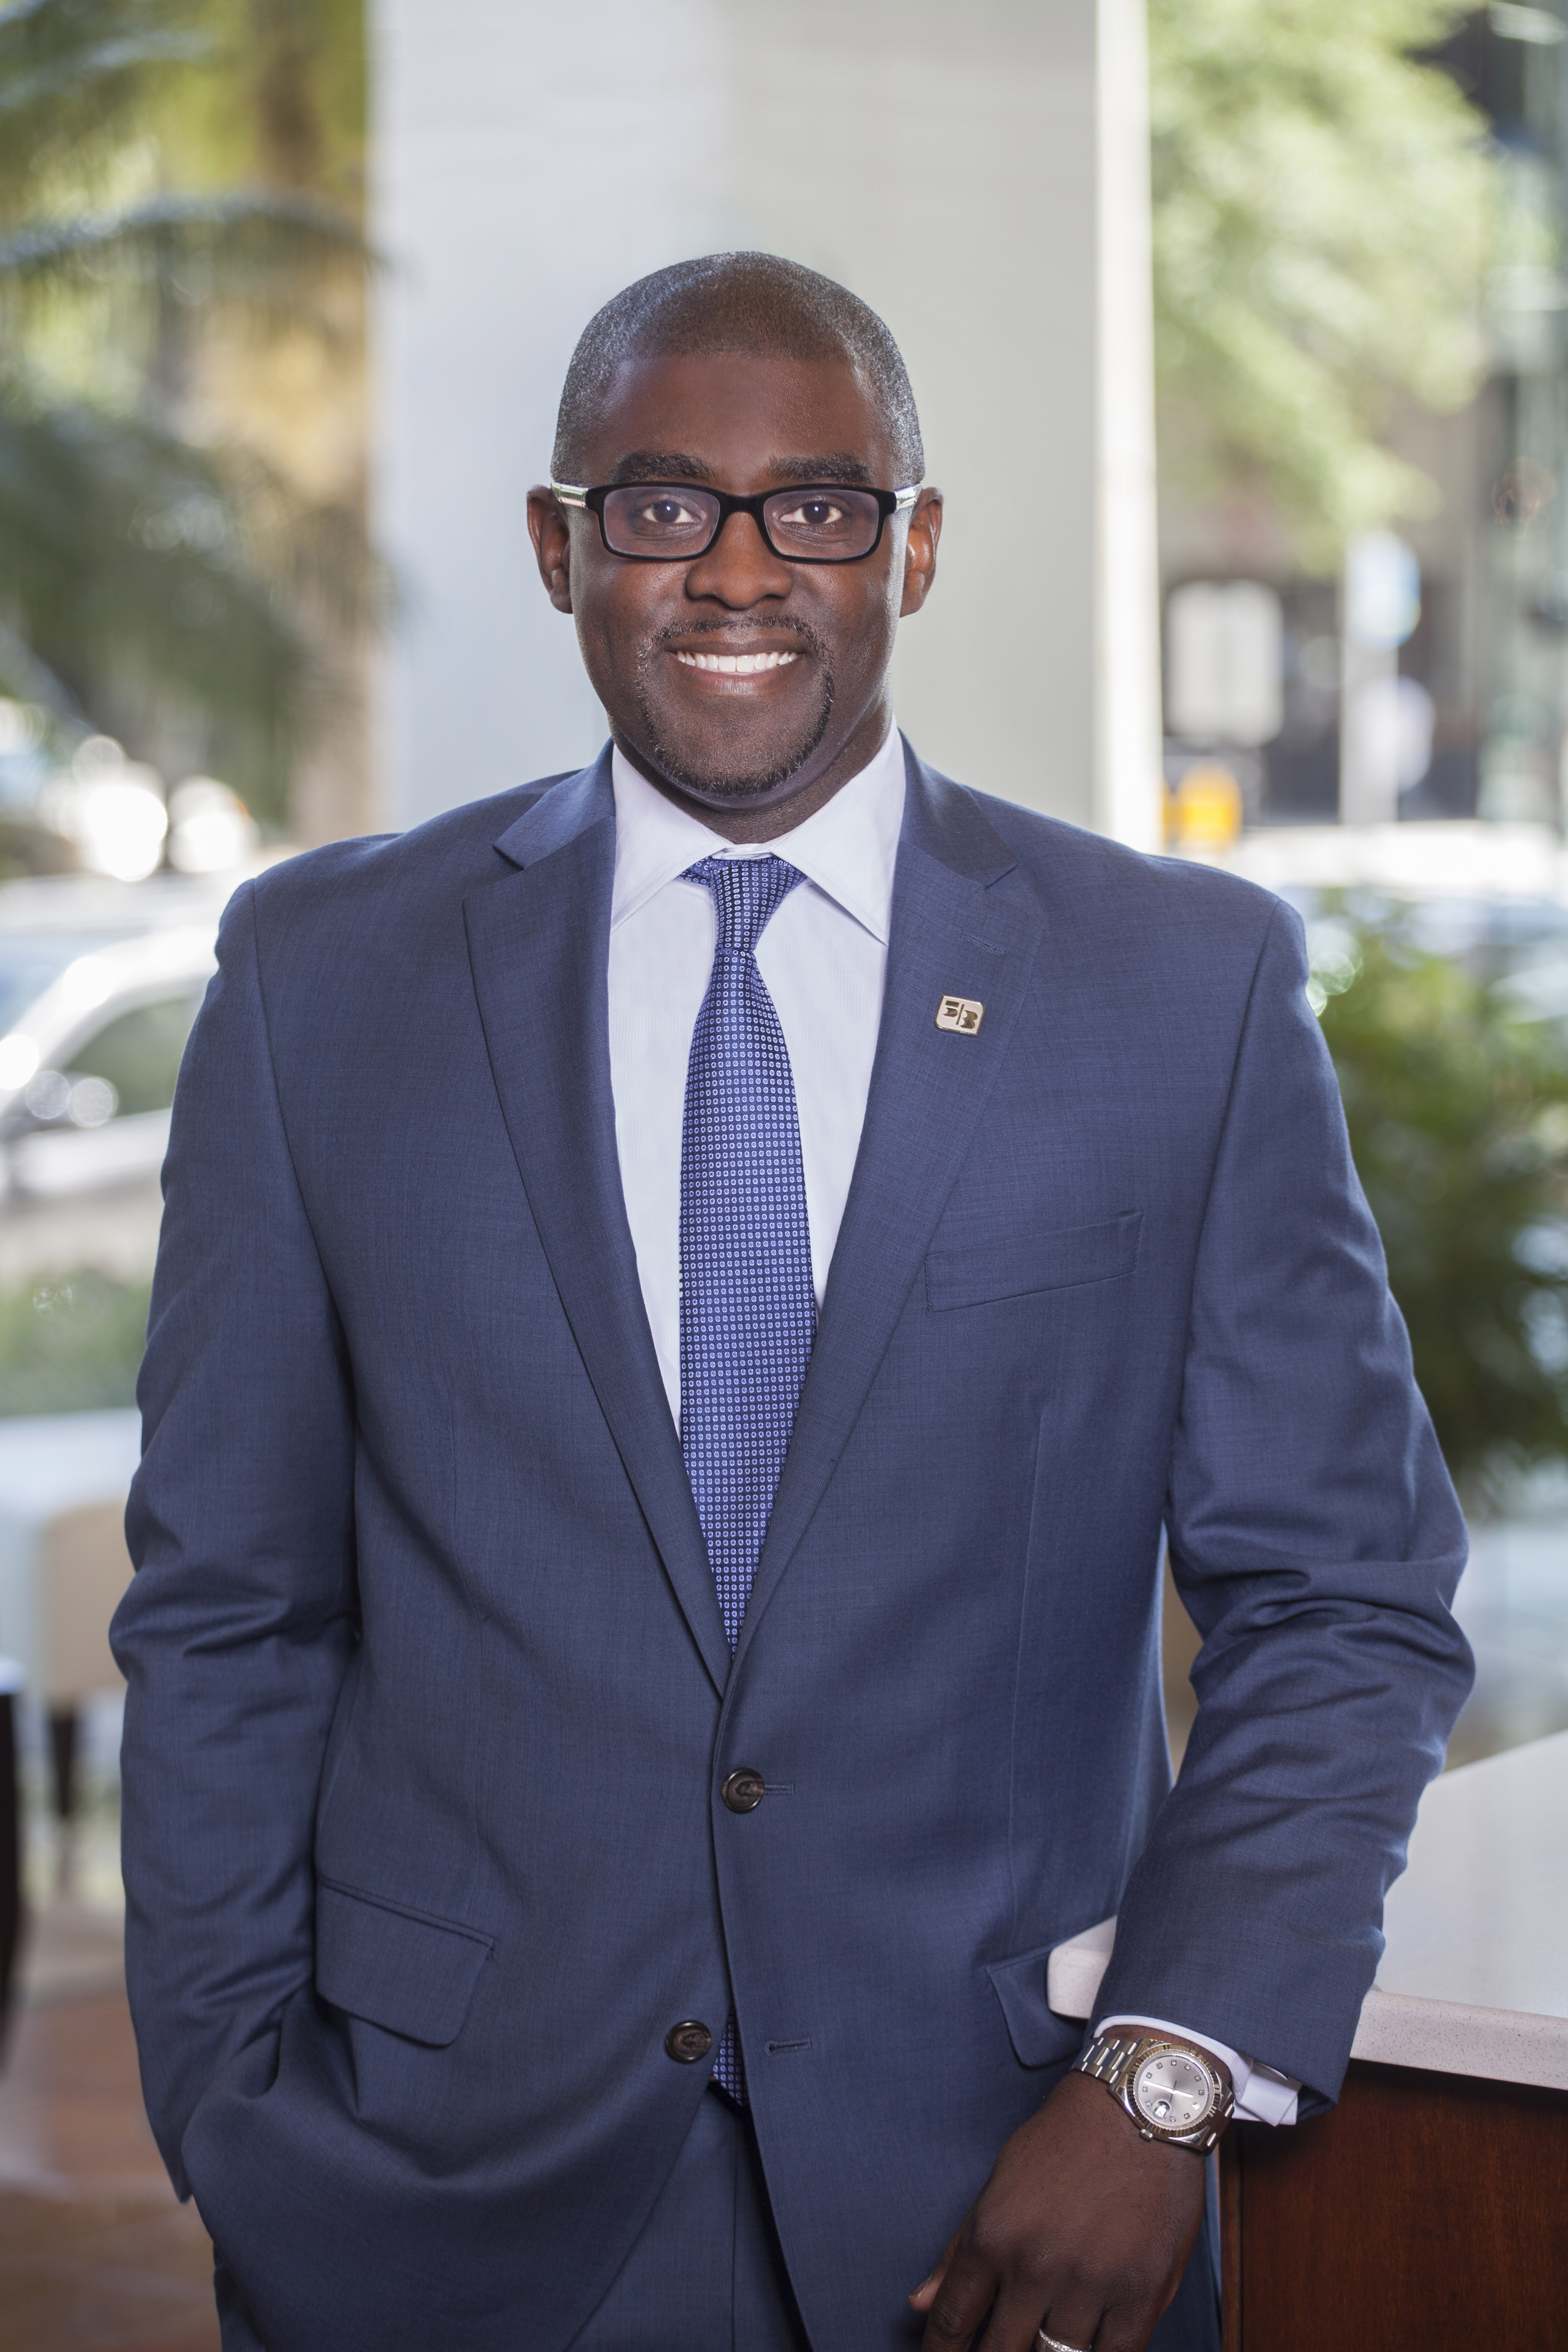 brian lamb named one of the top 100 most influential blacks in